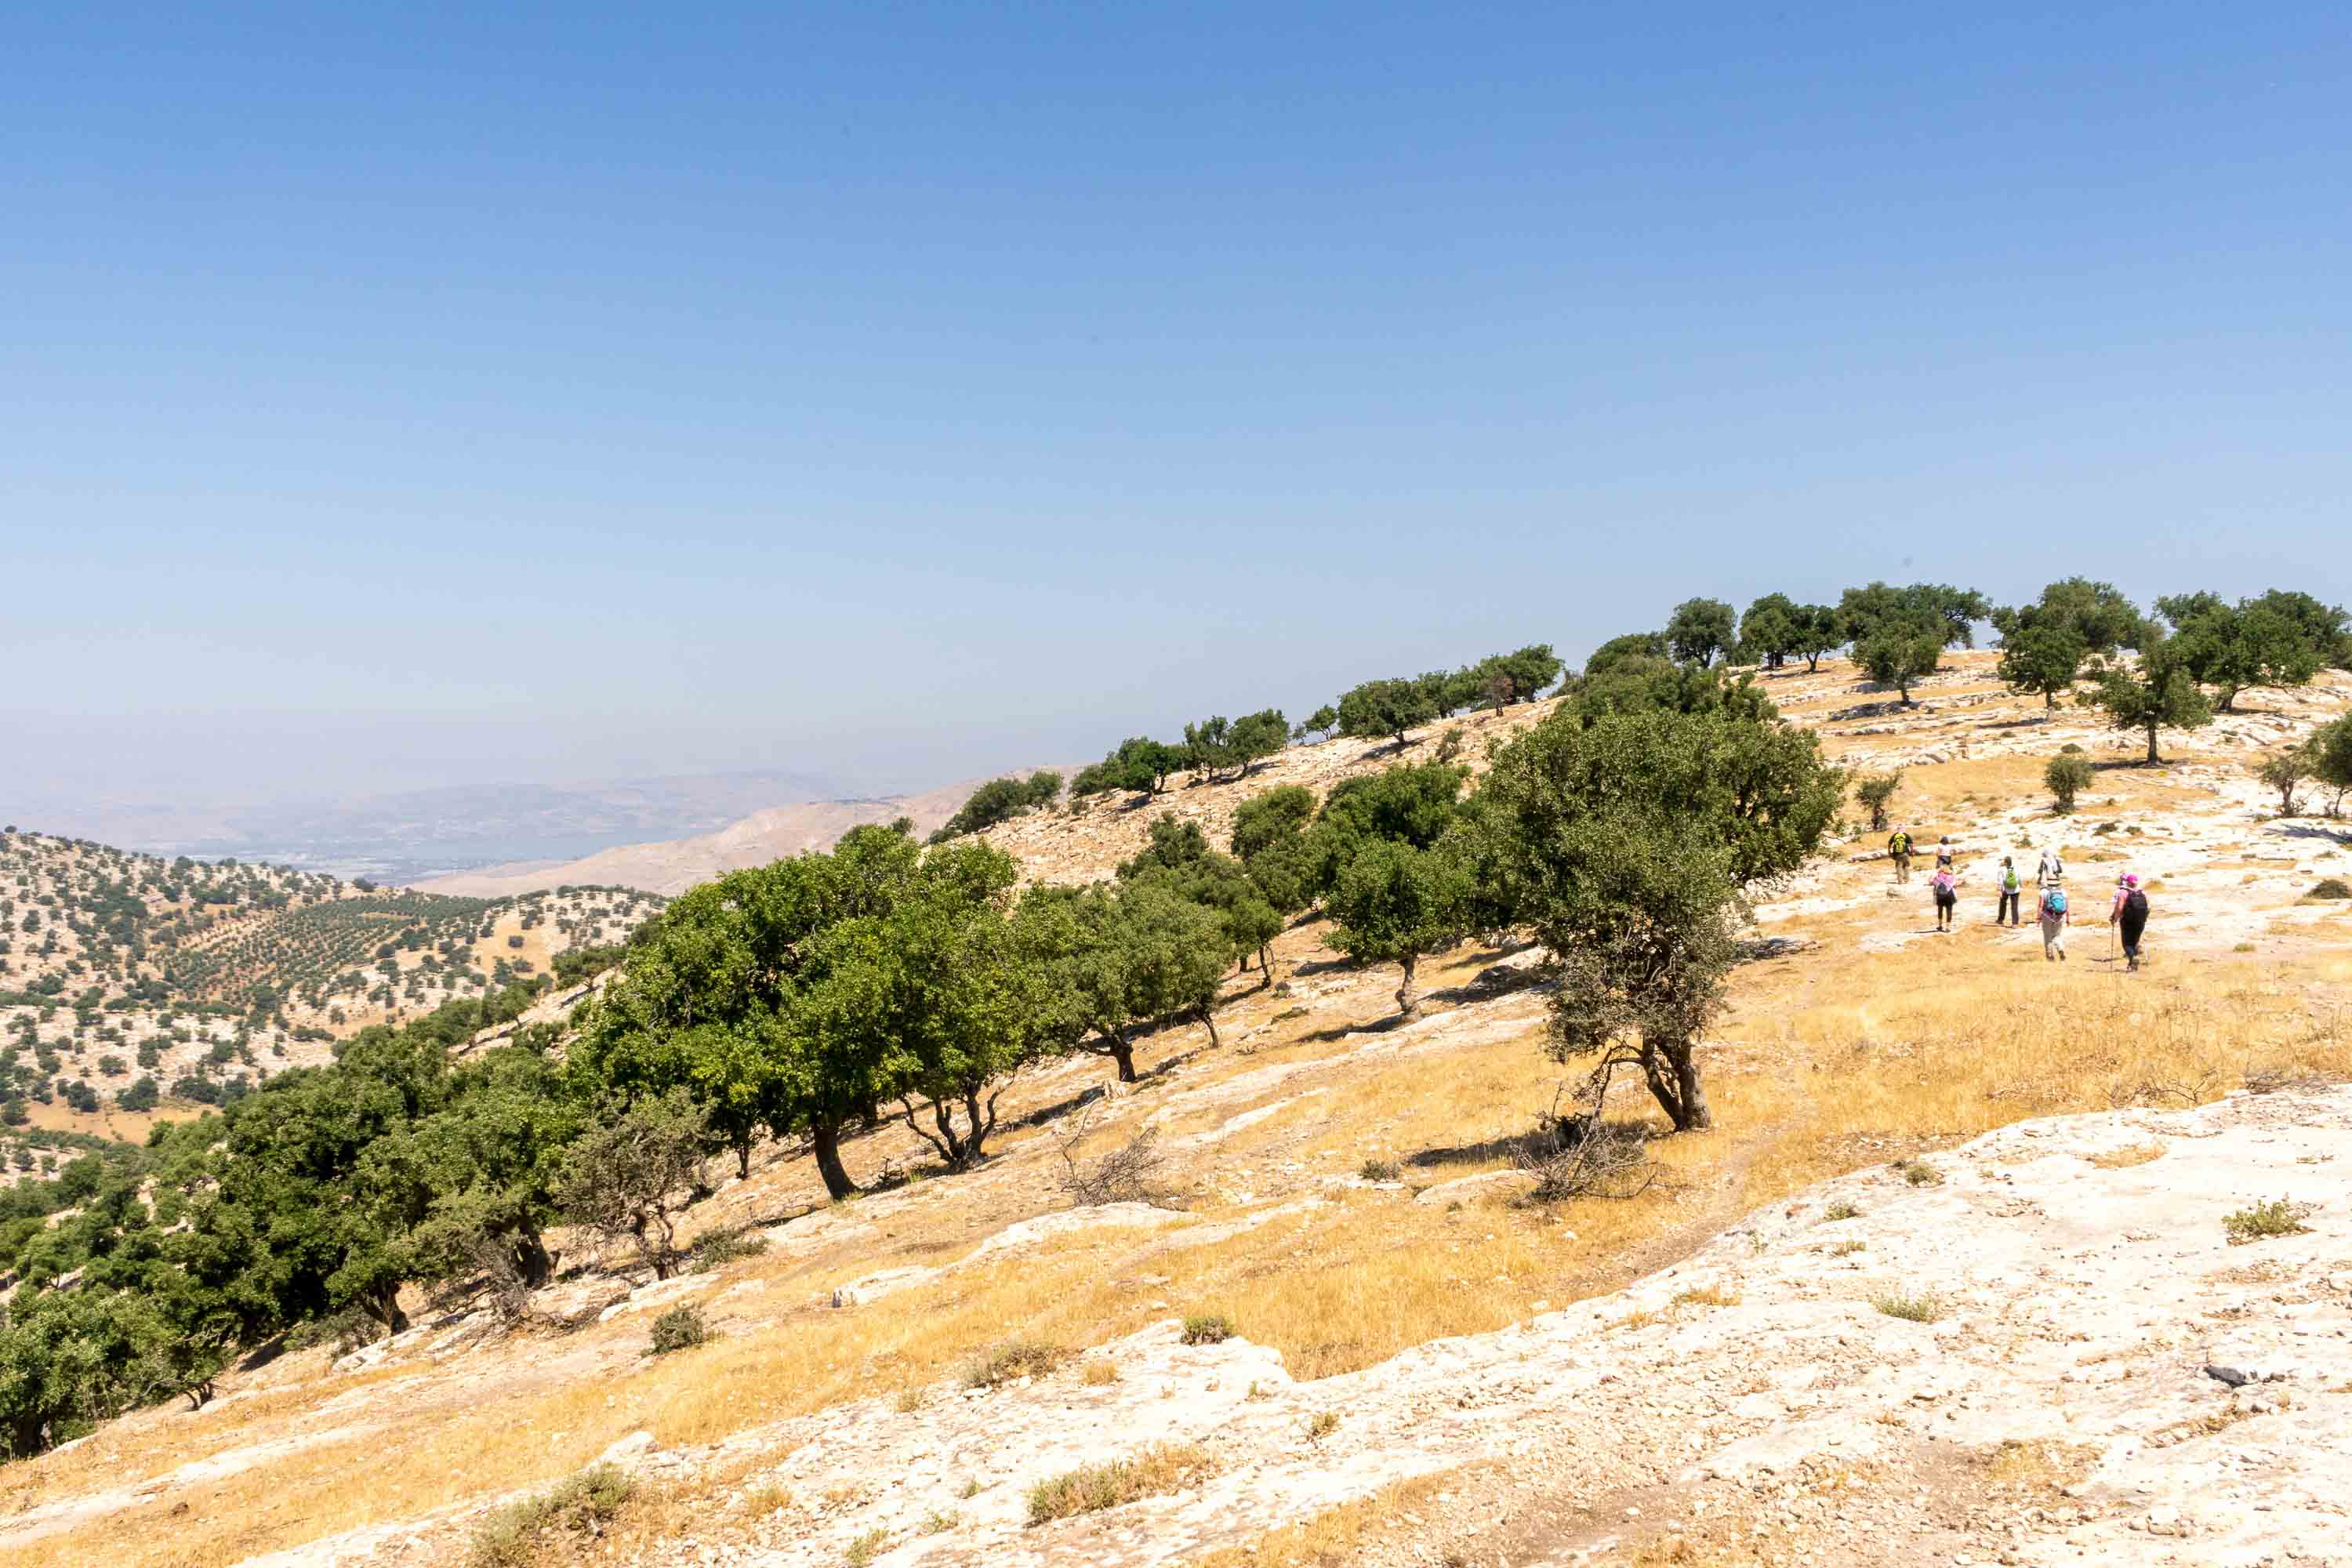 Hiking borderlands and finding community on the Jordan Trail